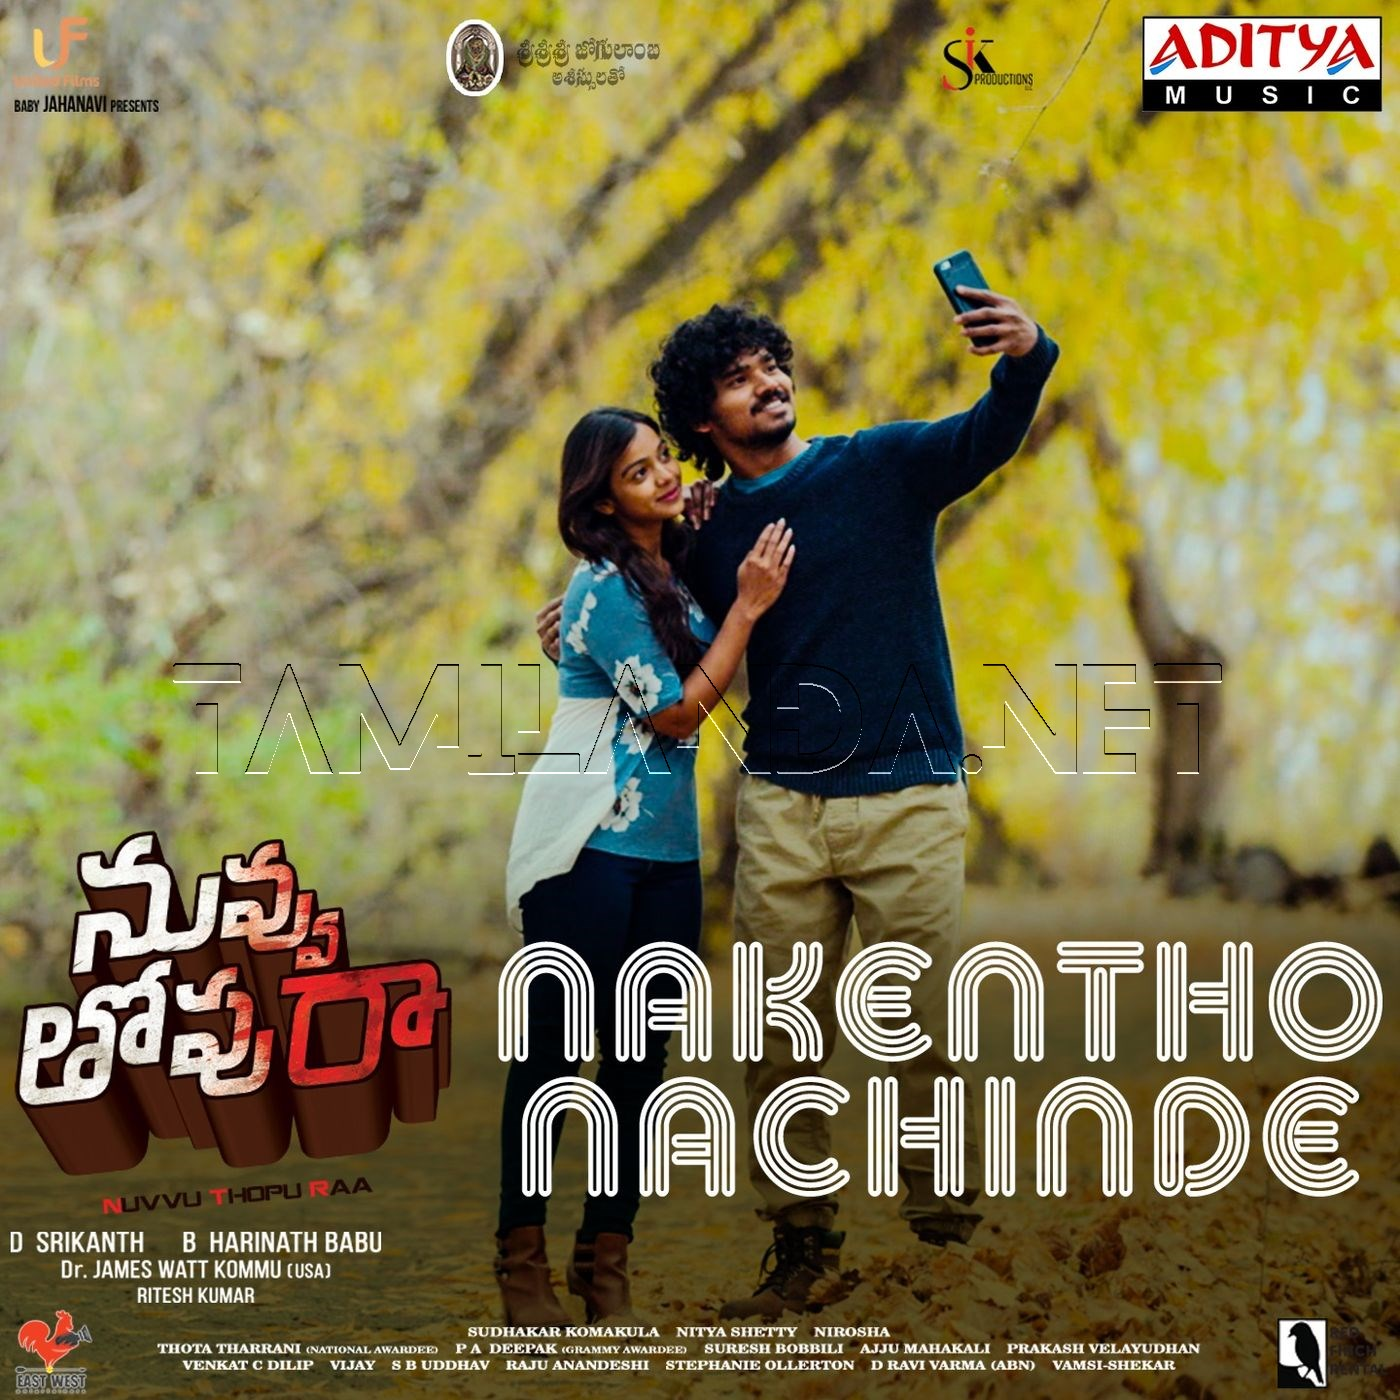 Nakentho Nachinde (From Nuvvu Thopu Raa) – Single (2019)